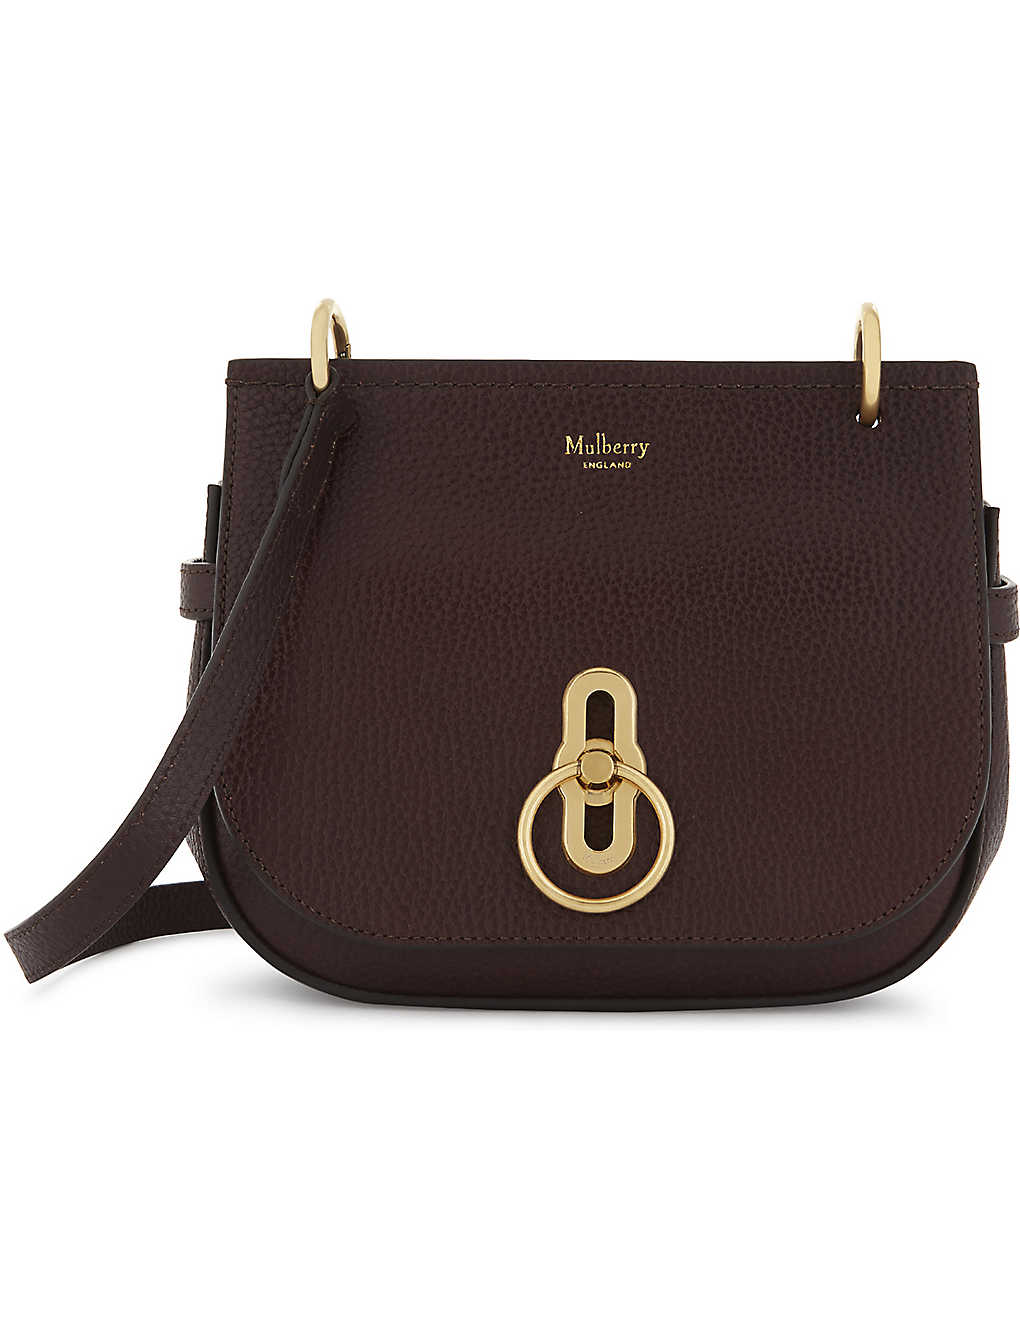 bedfbeb109ec MULBERRY - Amberley small grained leather cross-body bag ...